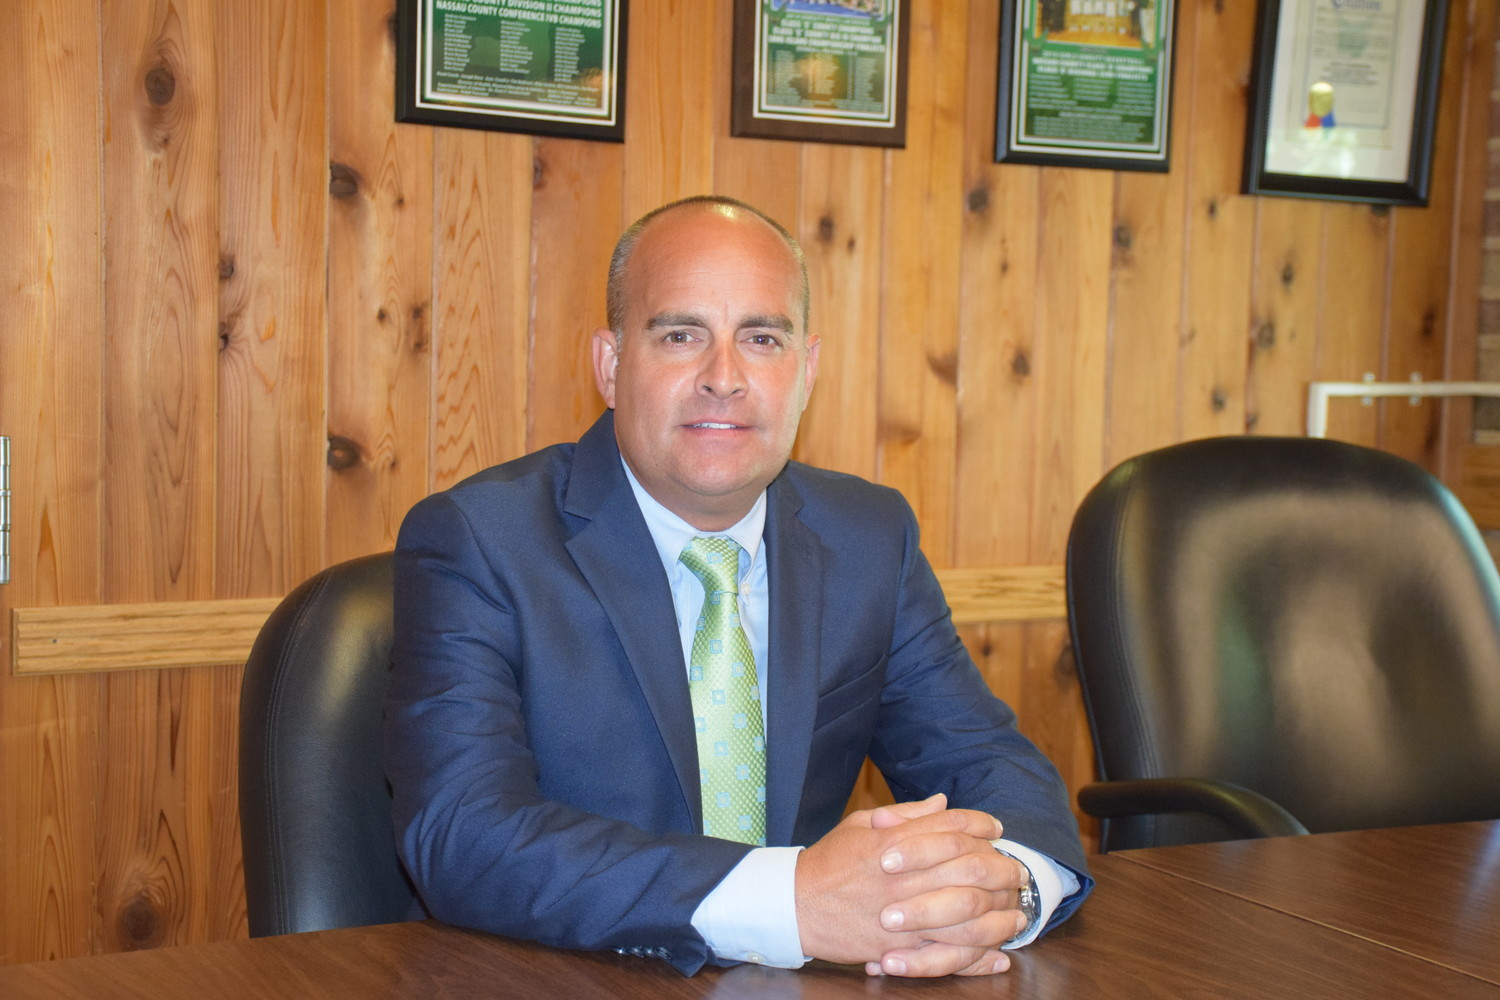 Patrick DiClemente, the new principal at Locust Valley High School, is looking forward to the first day of school.